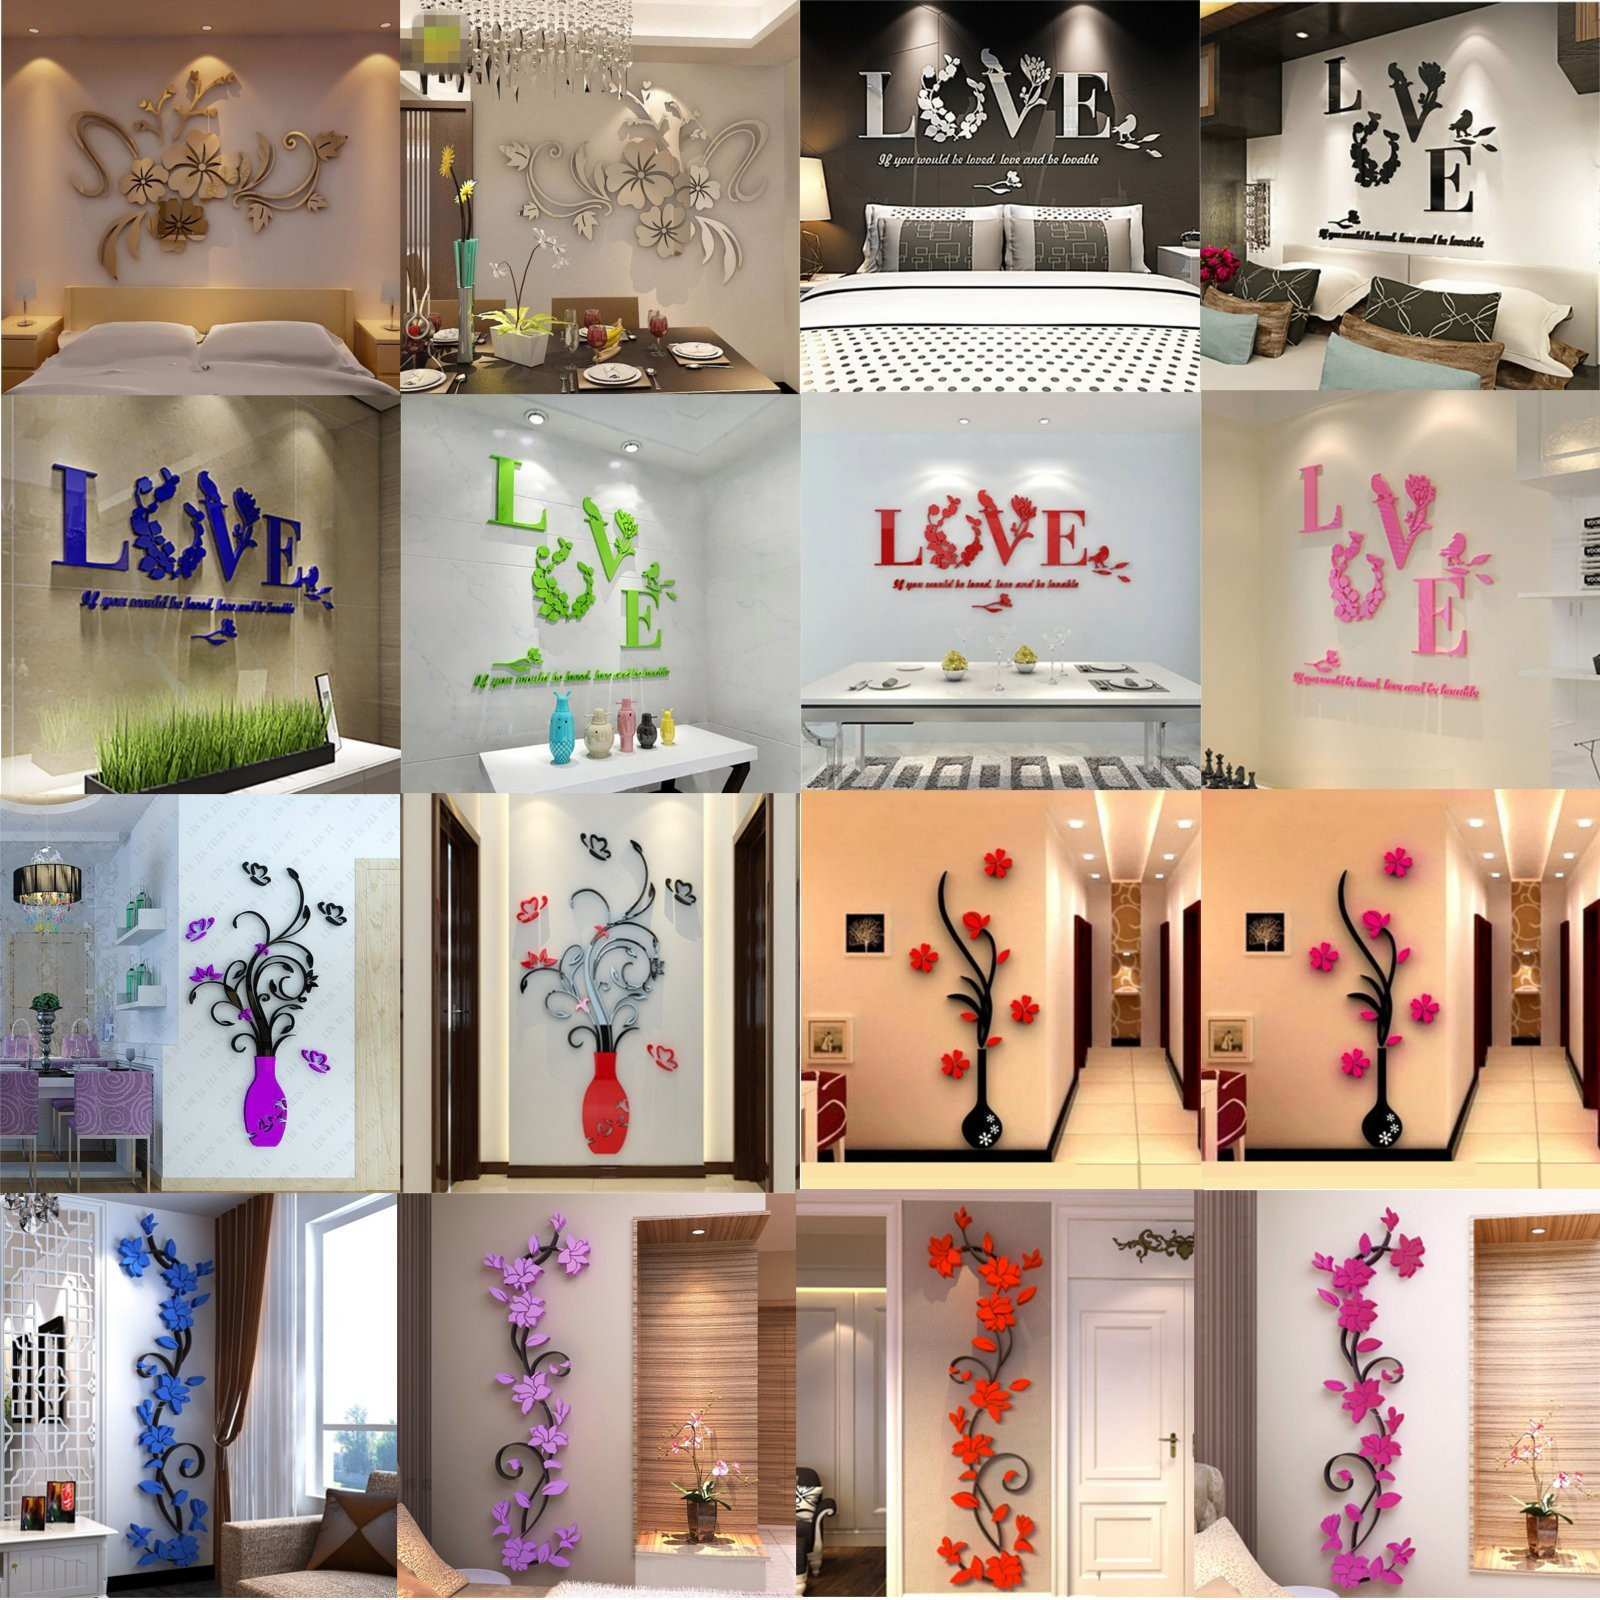 HOT 3D Mirror Wall Stickers Quote Flower Vase Acrylic Decal Home DIY